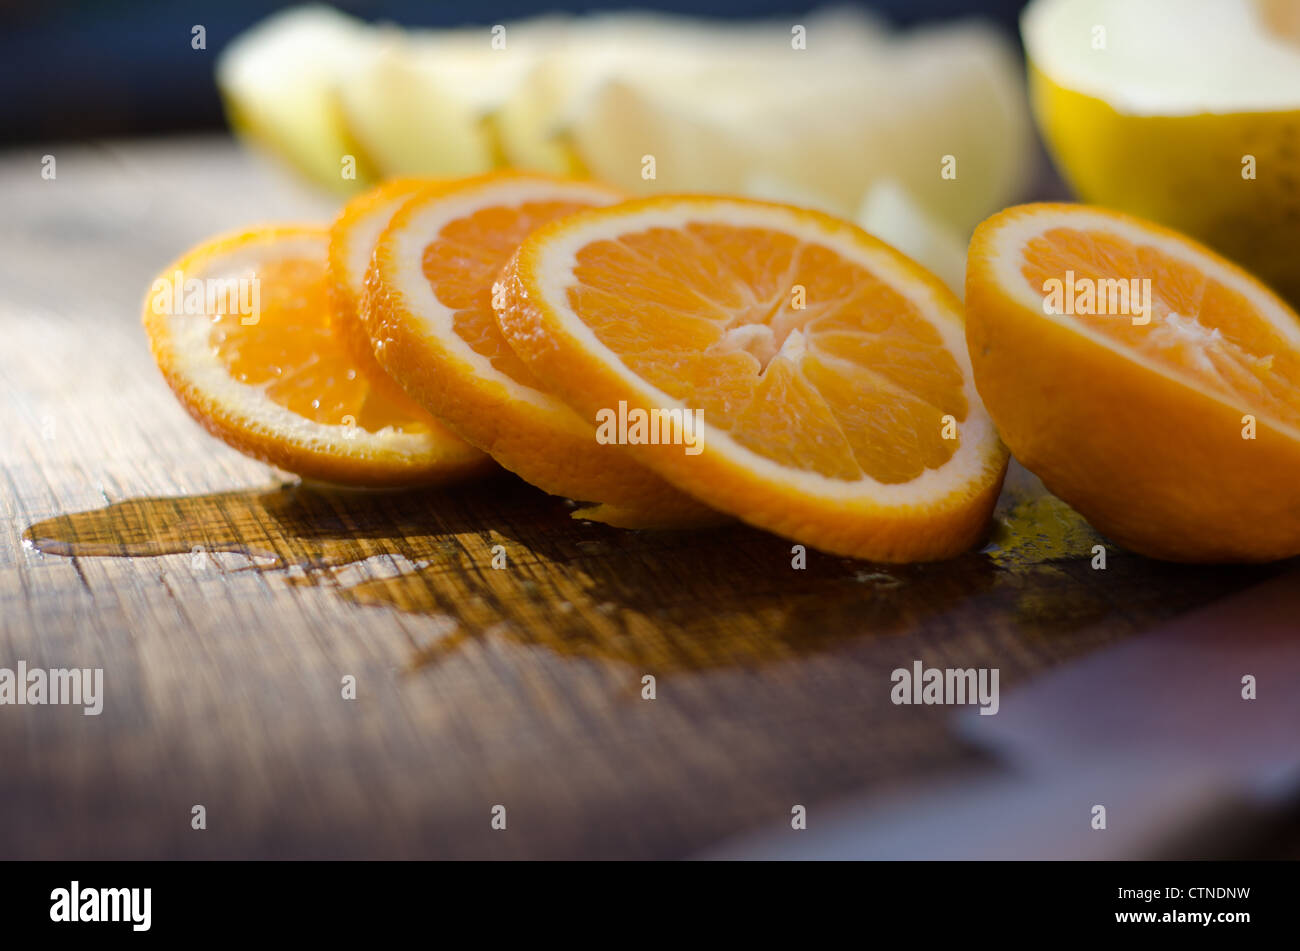 Slices of freshly cut orange on an oak board with out of focus melon in background. Stock Photo